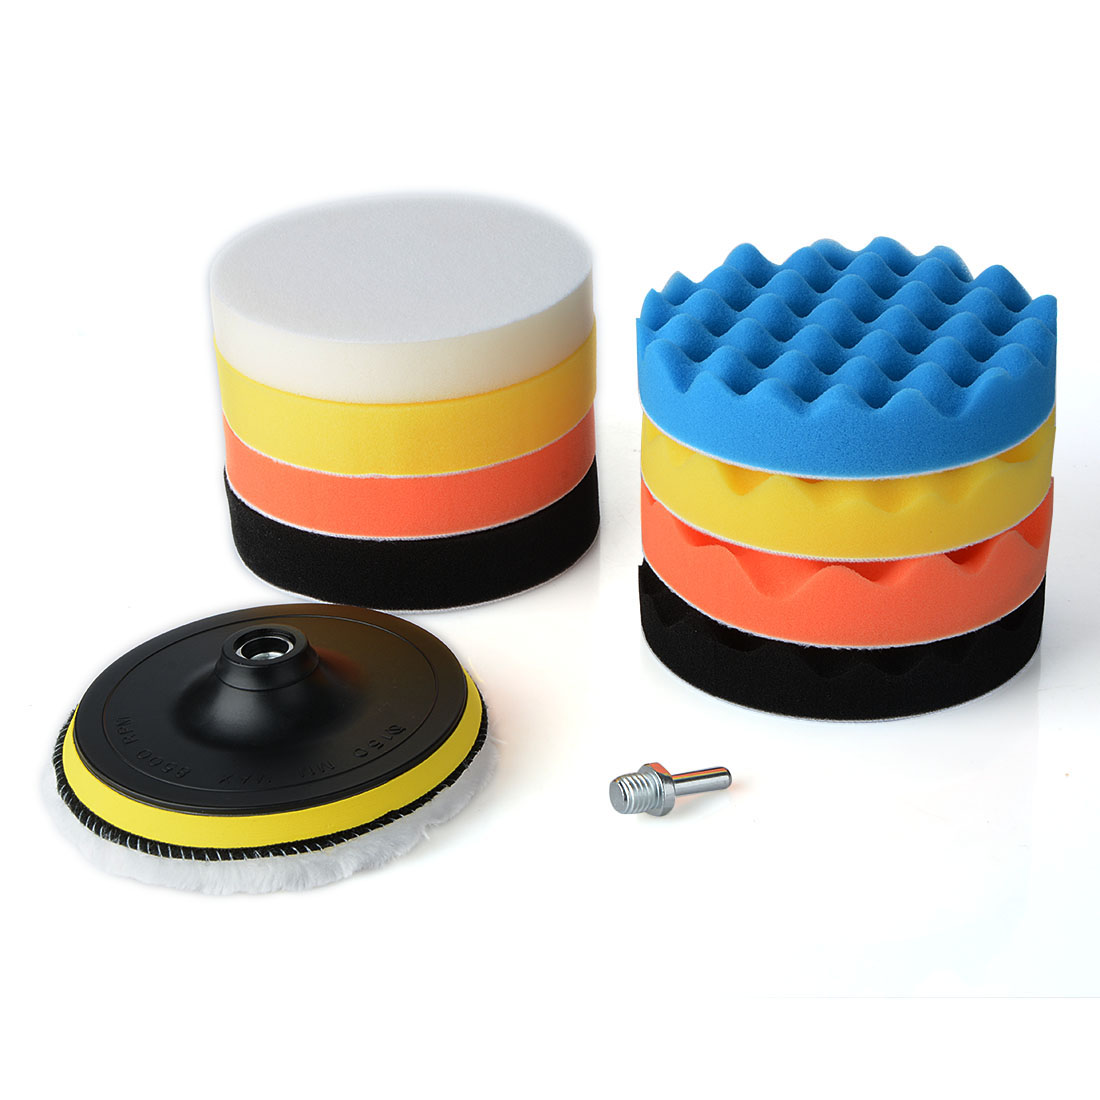 11Pcs 6 inch Sponge Woolen Buffing Pad Auto Car Polishing Wheel Kit With M14 Drill Adapter polishing buffing pad kit for car polishing with m10 thre drill adapter buffing pad kit auto truck boat polisher tools 4 stypes